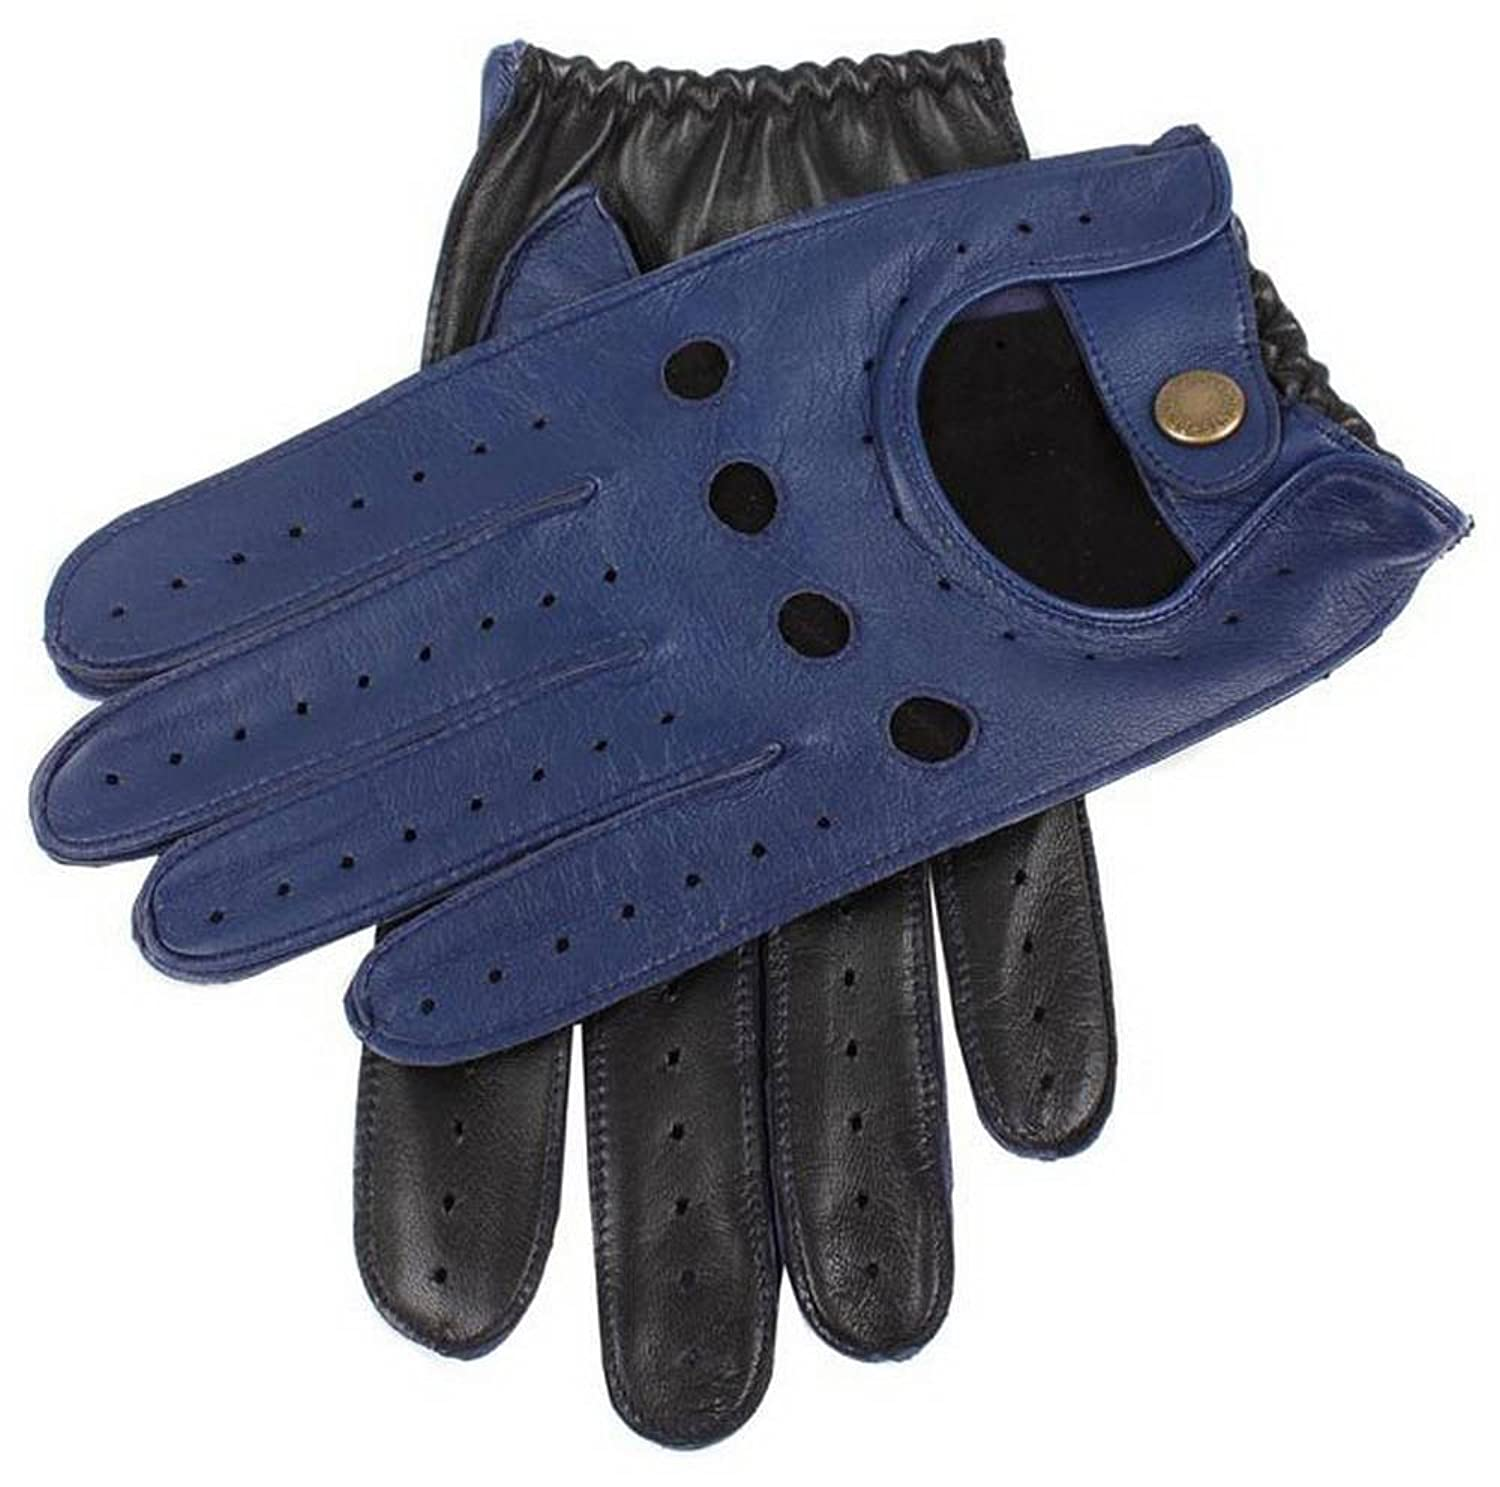 Mens leather gloves dents - Royal Blue Black Two Tone Leather Driving Gloves By Dents Medium At Amazon Men S Clothing Store